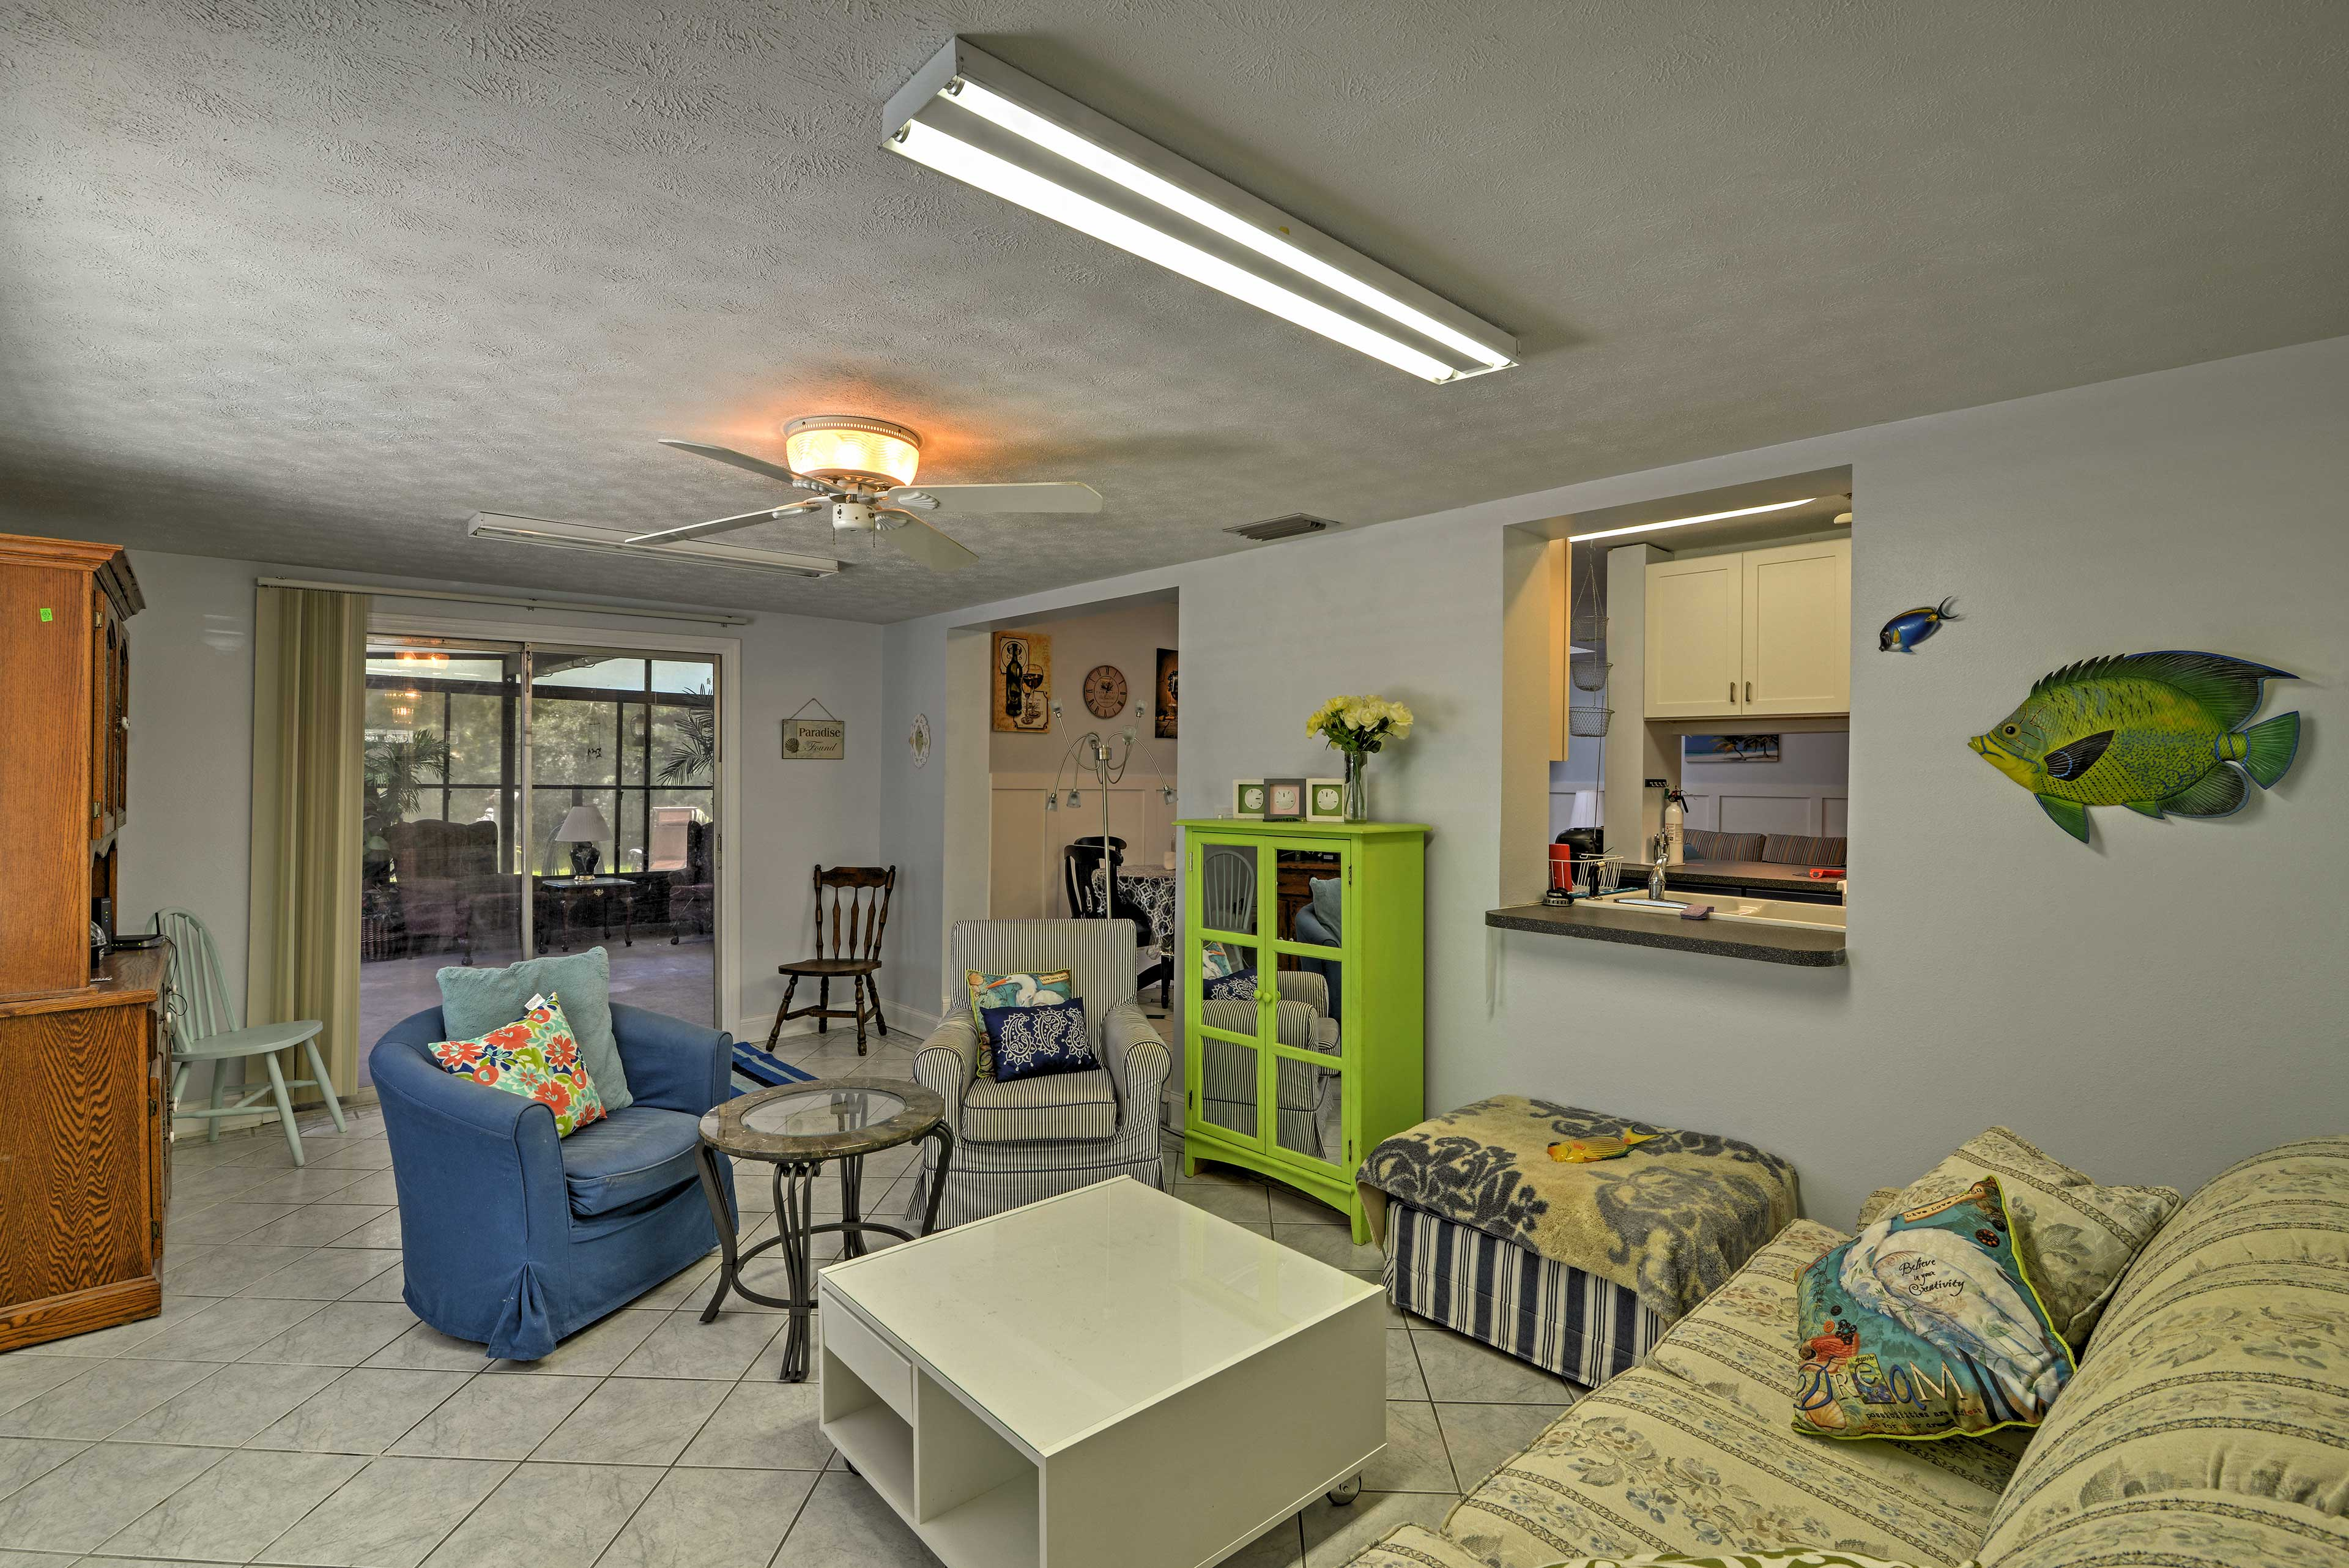 Step into the beach themed sitting room with a couch and 2 armchairs.